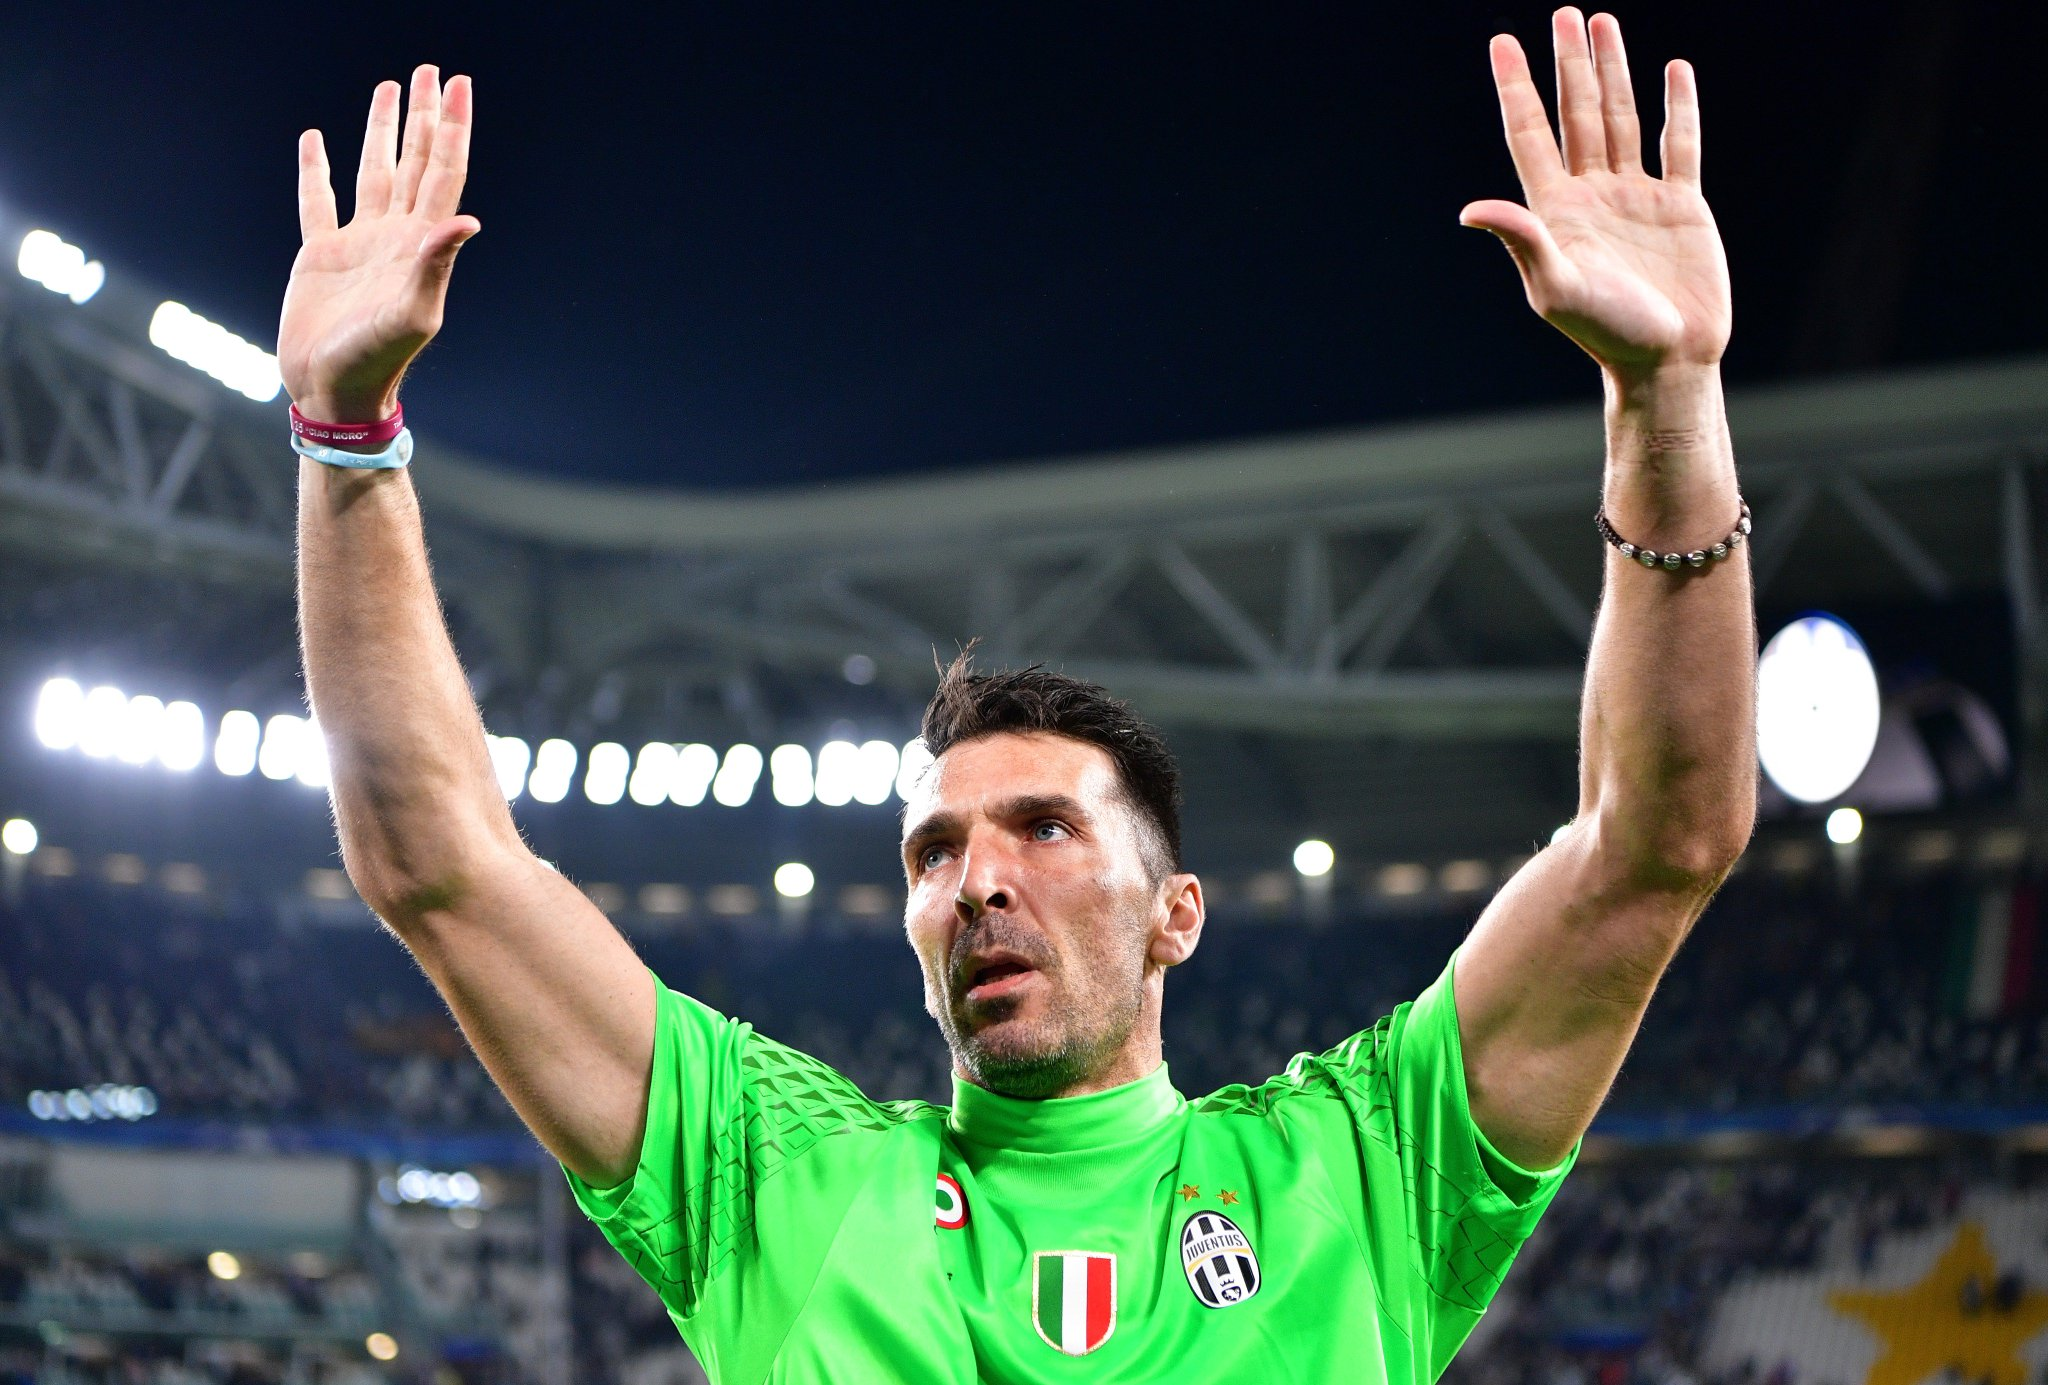 Gianluigi Buffon has confirmed that he will leave Juventus at the end of the season after 17 seasons. ⚫️⚪️   #UCL https://t.co/R9n4Oeos5e